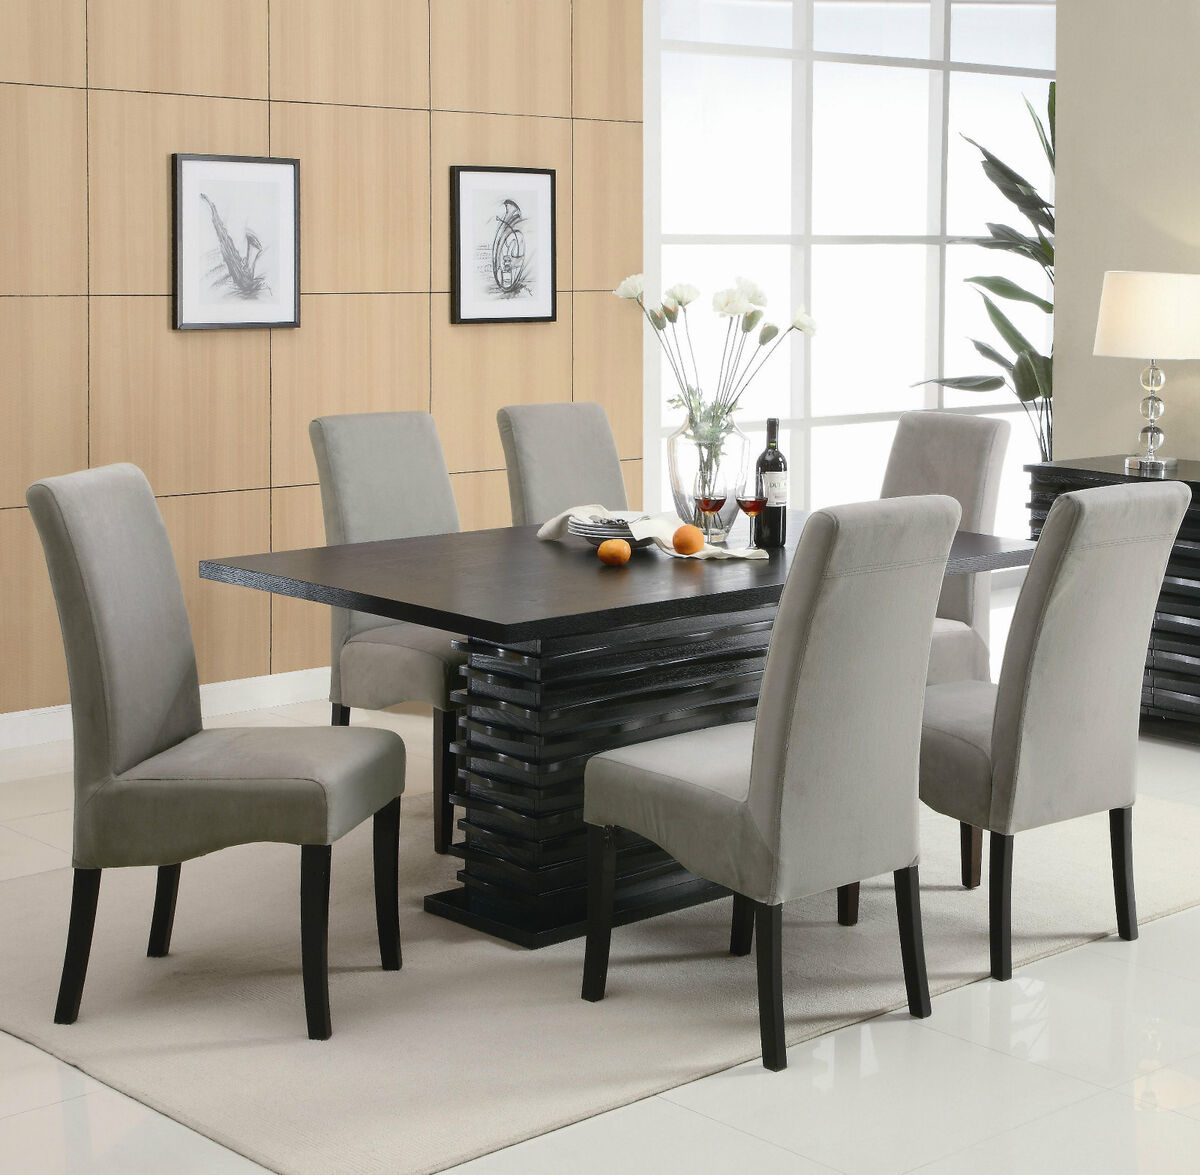 Dining table furniture contemporary dining table chairs - Dining room table contemporary ...